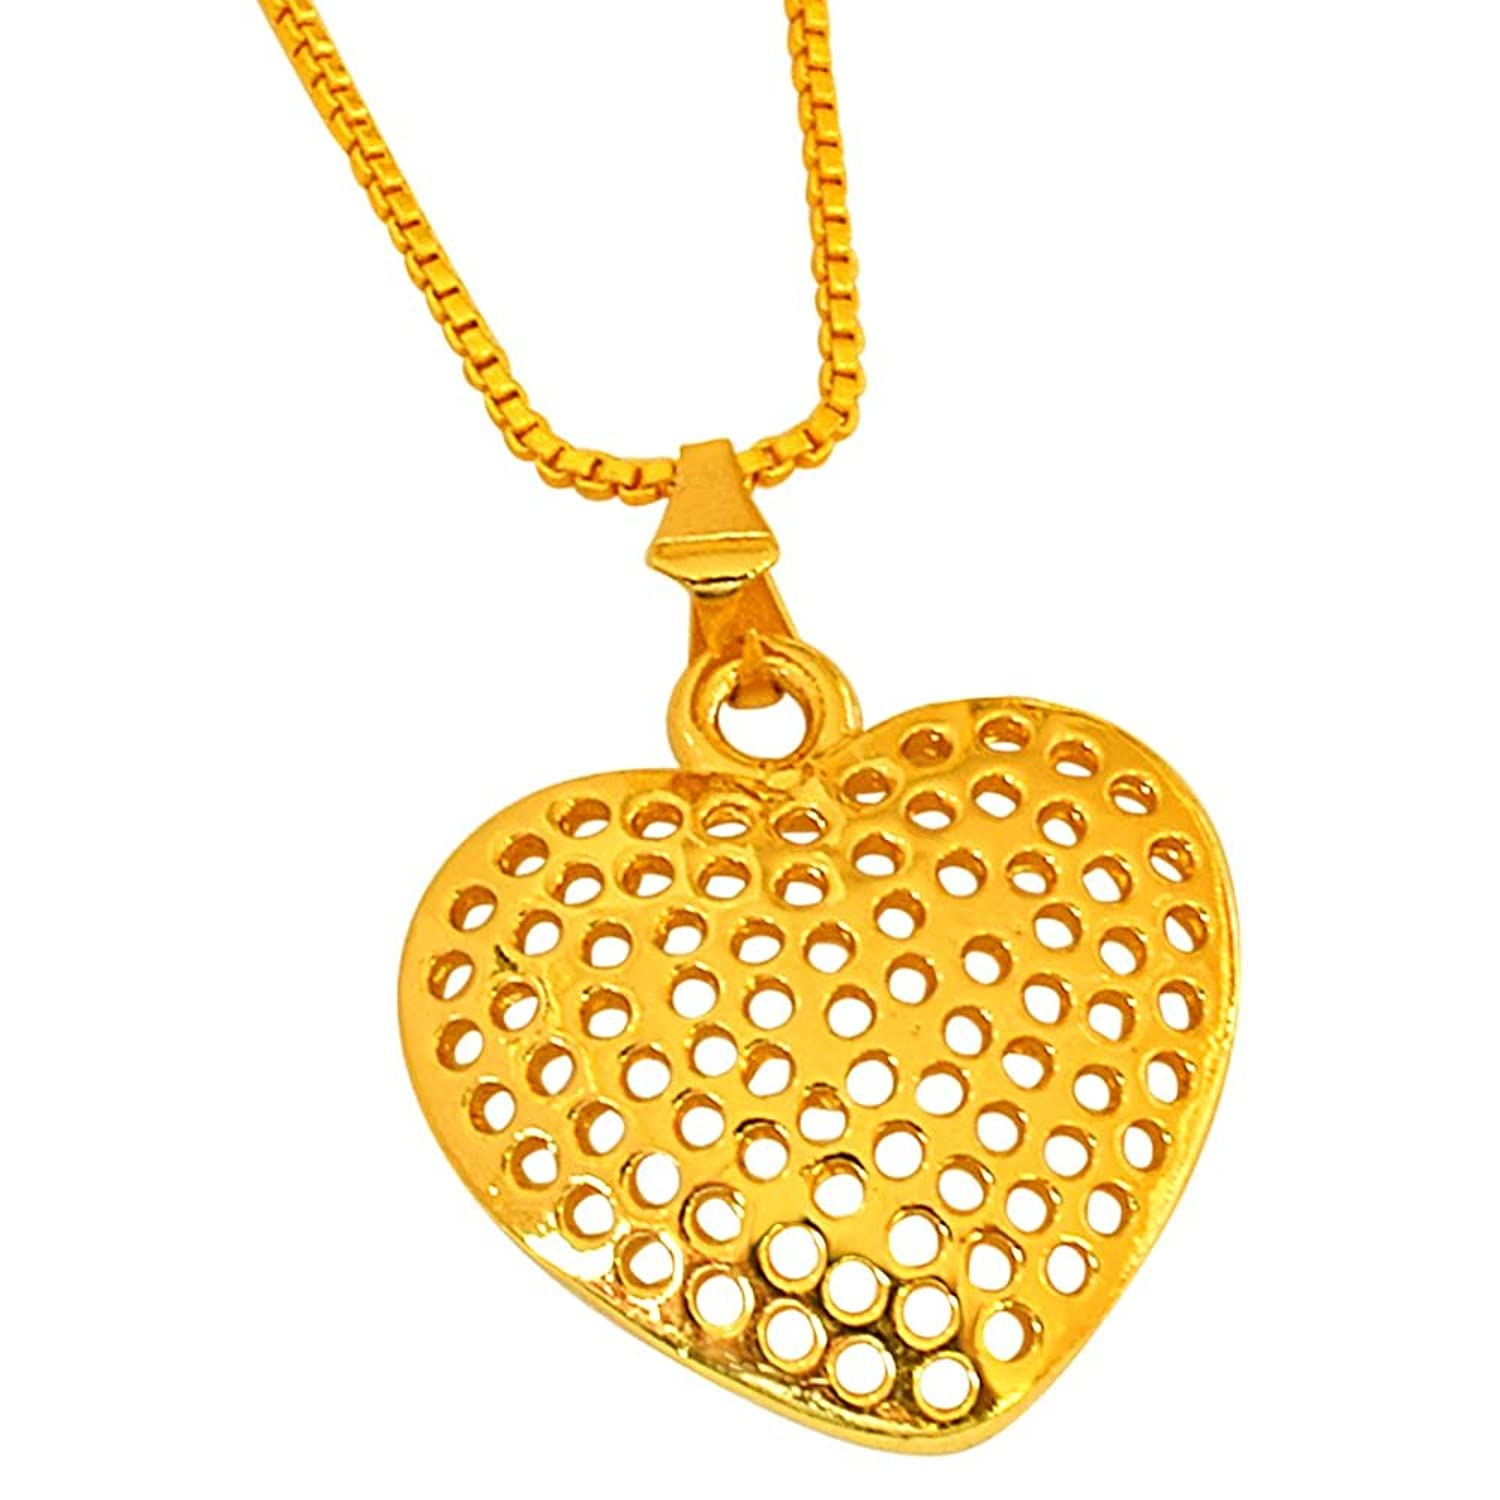 Buy surat diamond small heart shaped gold plated pendant with chain buy surat diamond small heart shaped gold plated pendant with chain for girls sds263 online at low prices in india amazon jewellery store amazon aloadofball